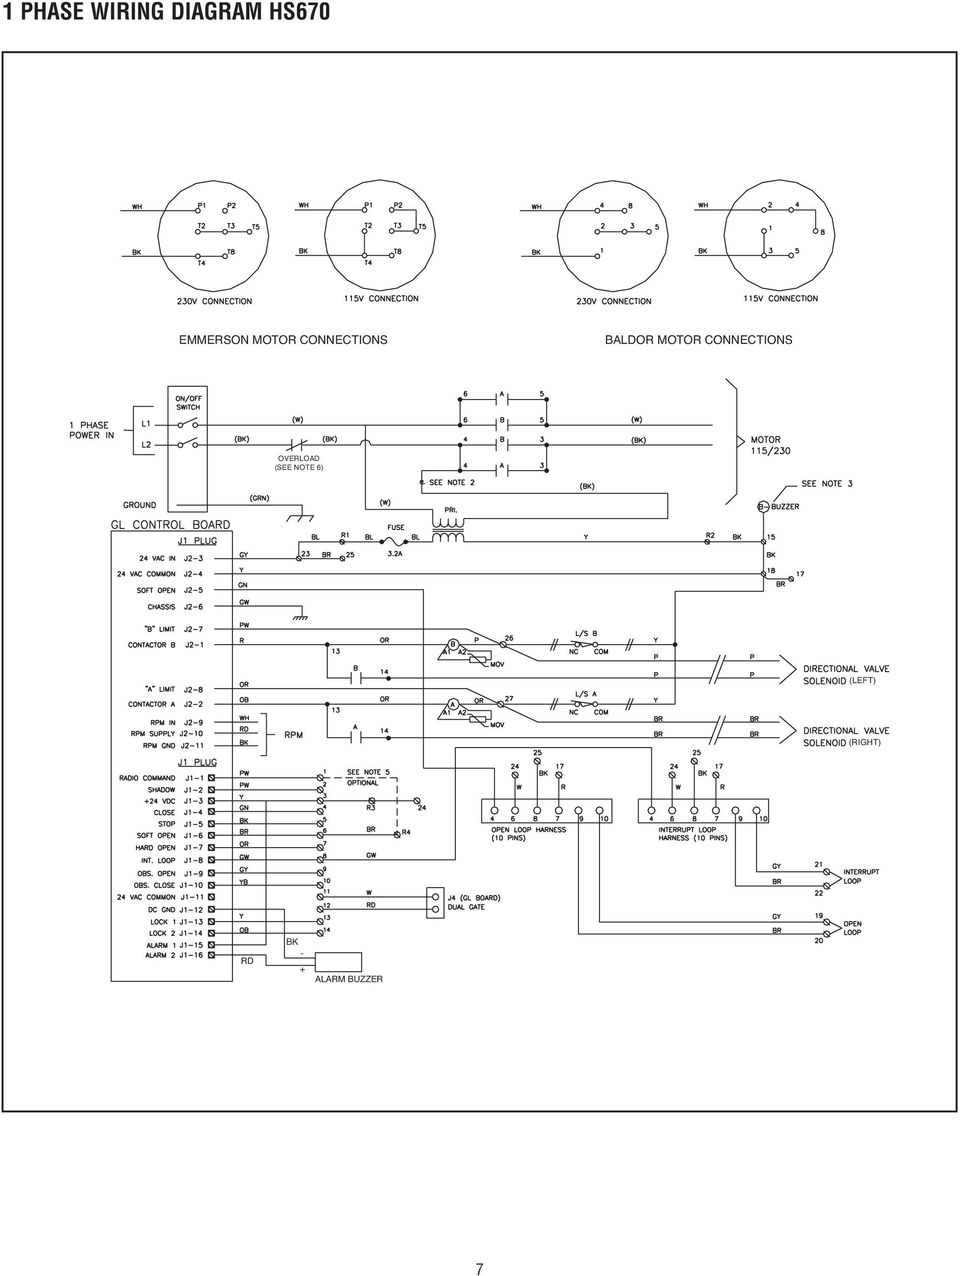 Wiring Diagram Autovision Page 3 And Schematics M151a1 Motor Connections Overload See 8 1 Phase